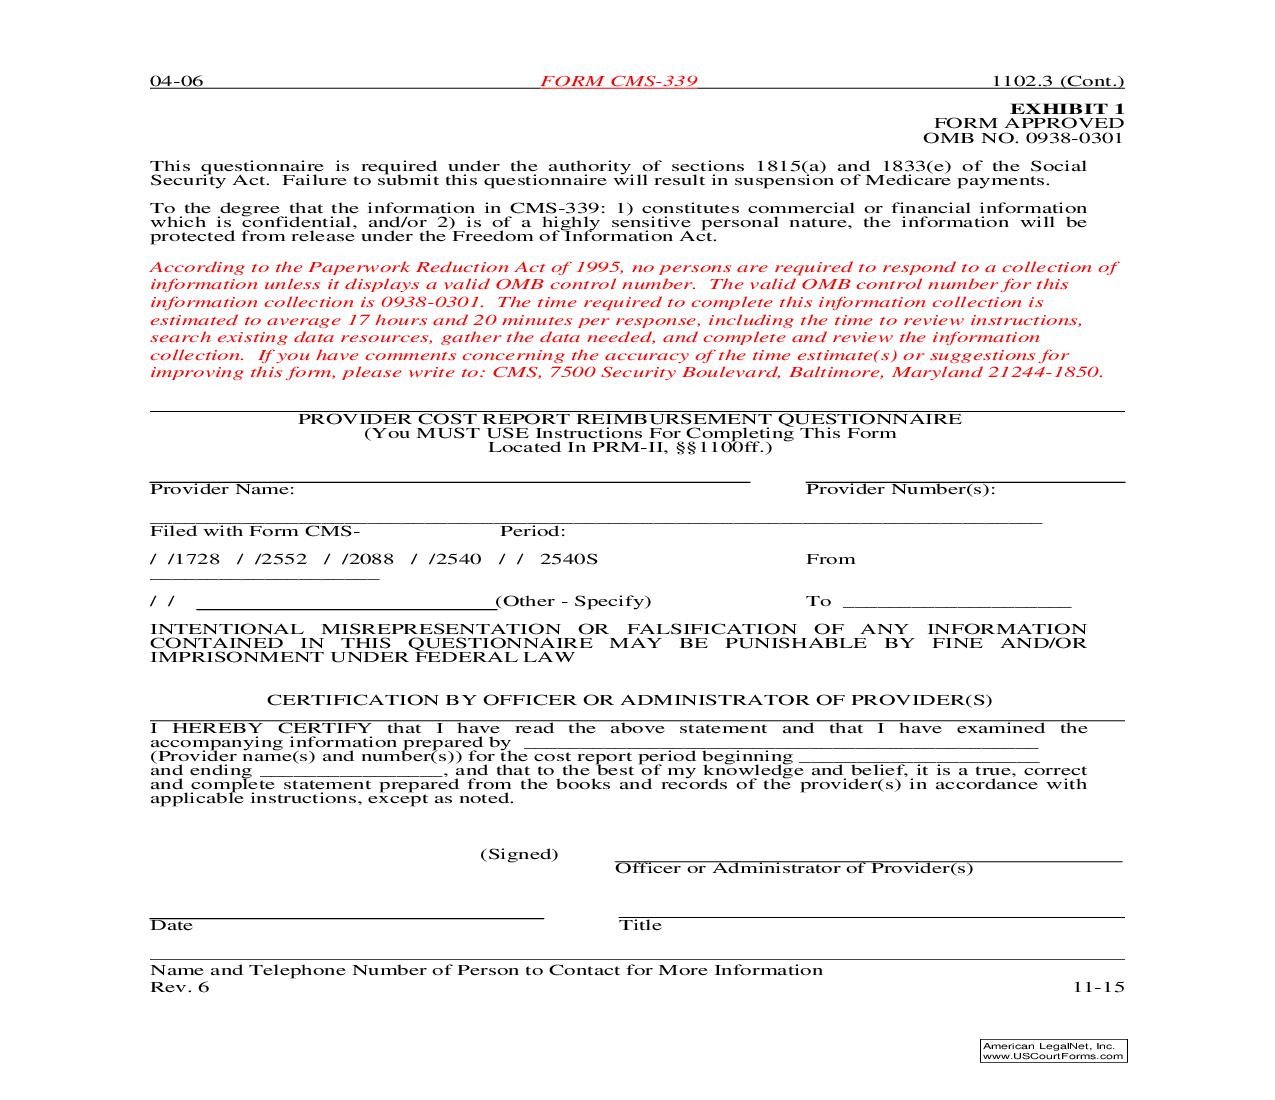 Provider Cost Report Reimbursment Questionaire {CMS-339} | Pdf Fpdf Doc Docx | Official Federal Forms